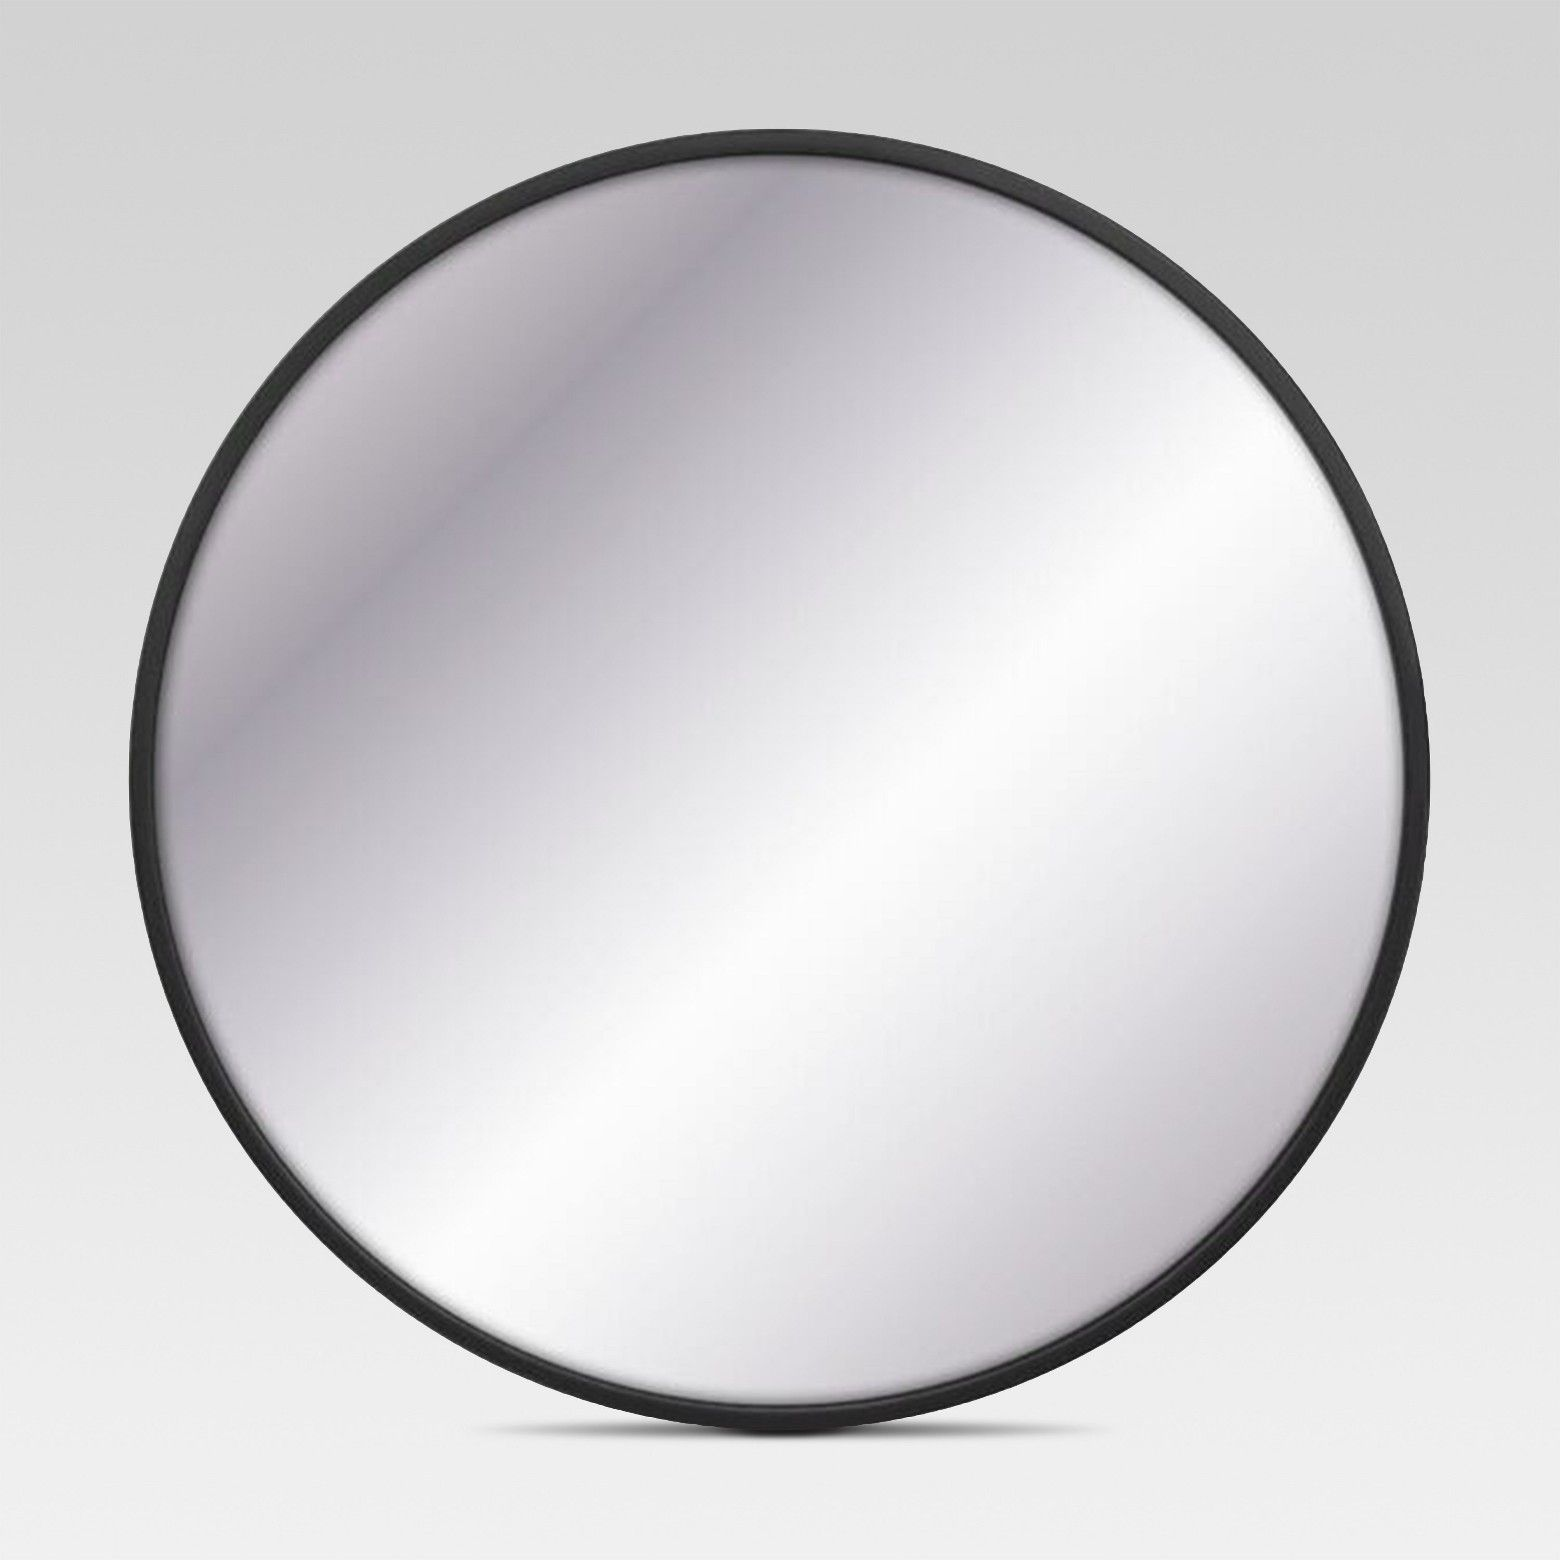 28 Round Decorative Wall Mirror Black Project 62 Large Wall Mirror Mirror Wall Black Mirror